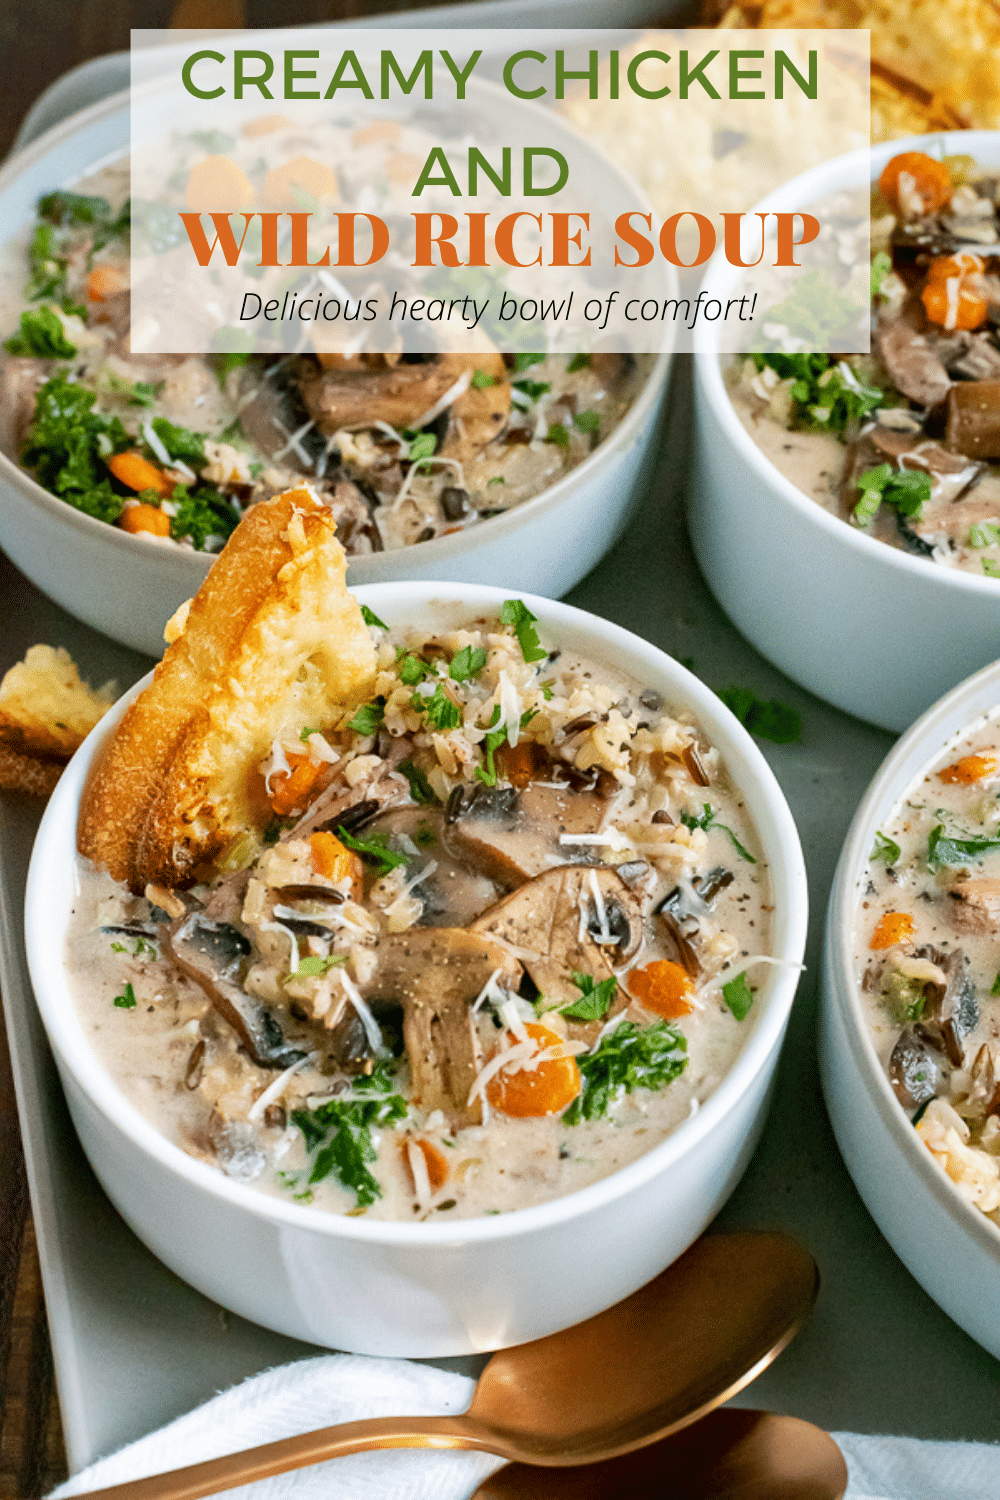 White bowls filled with creamy chicken and wild rice soup, garnished with cheese bread.